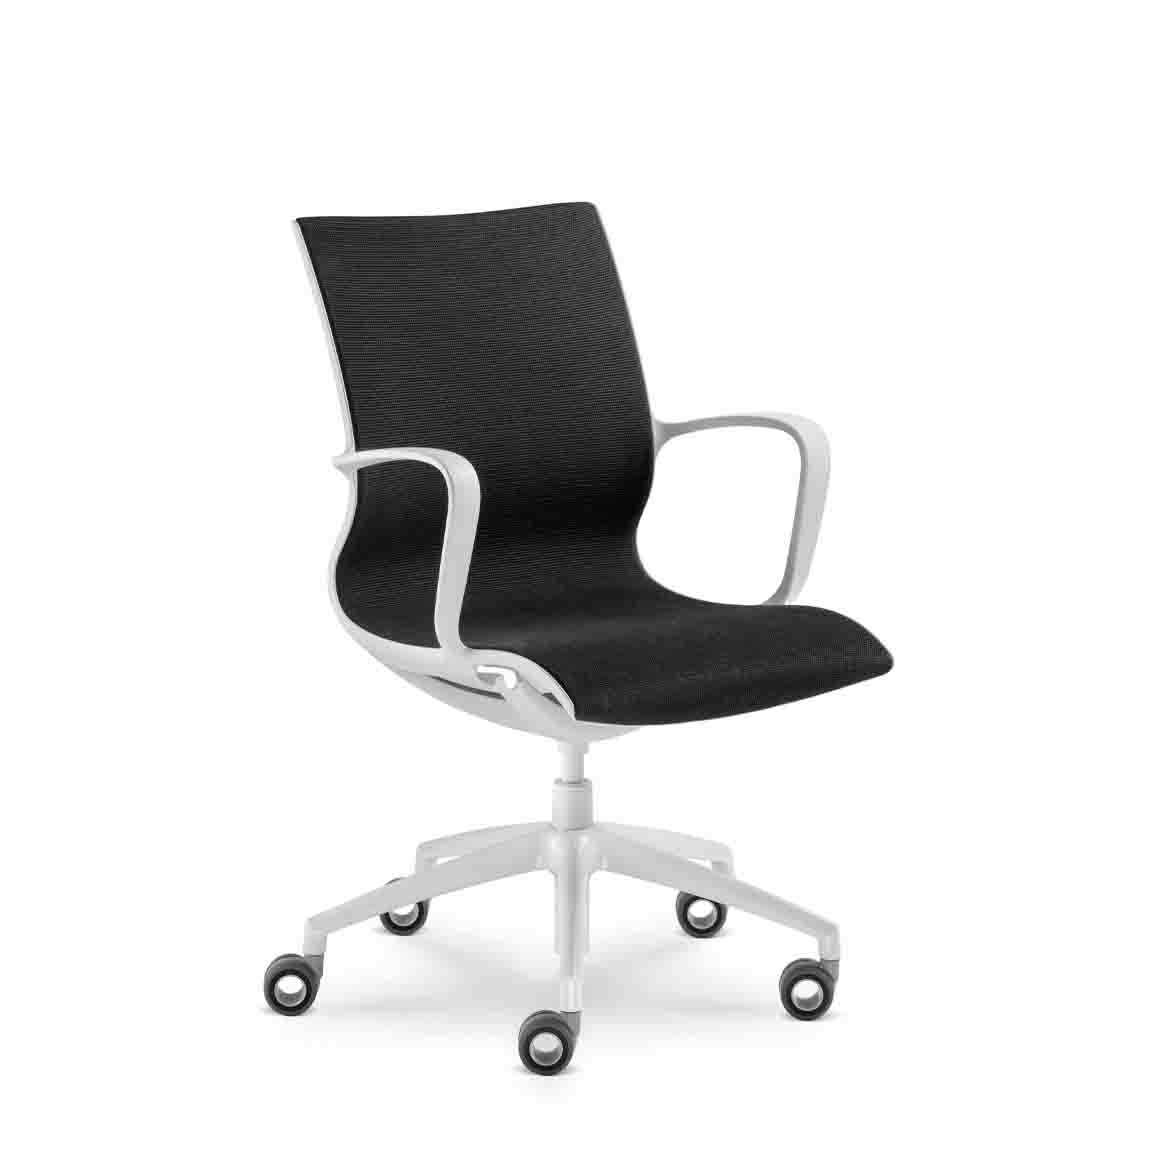 Height-adjustable office chair with arms, fully upholstered in self-supporting  mesh, light gray nylon frame, integrated rocking mechanism.